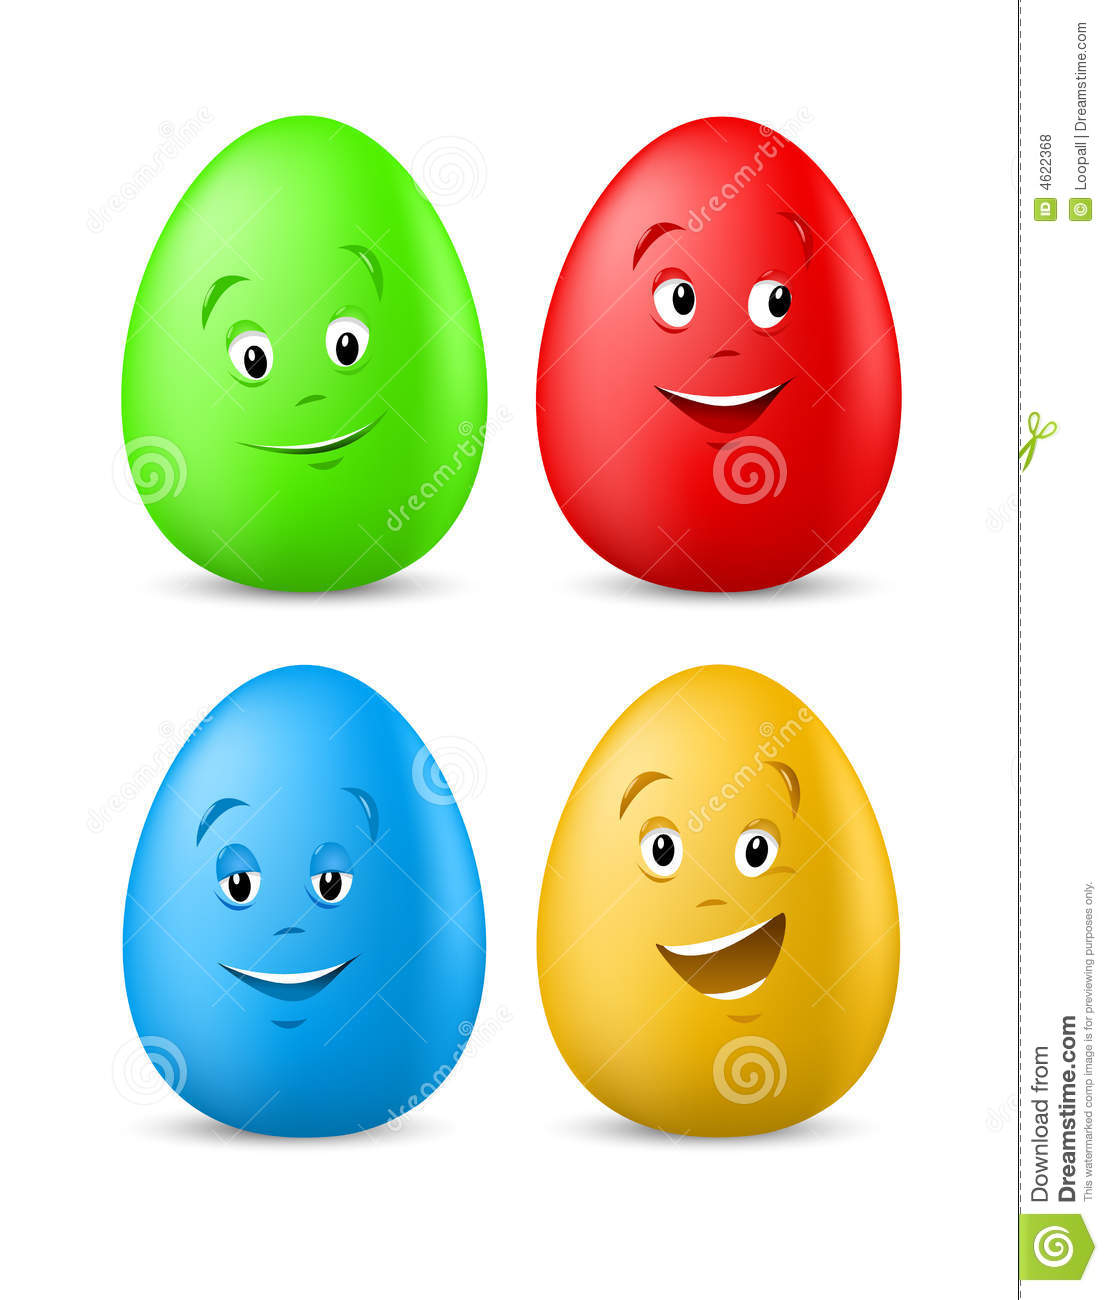 Huevos de Pascua coloreados divertidos con las caras felices